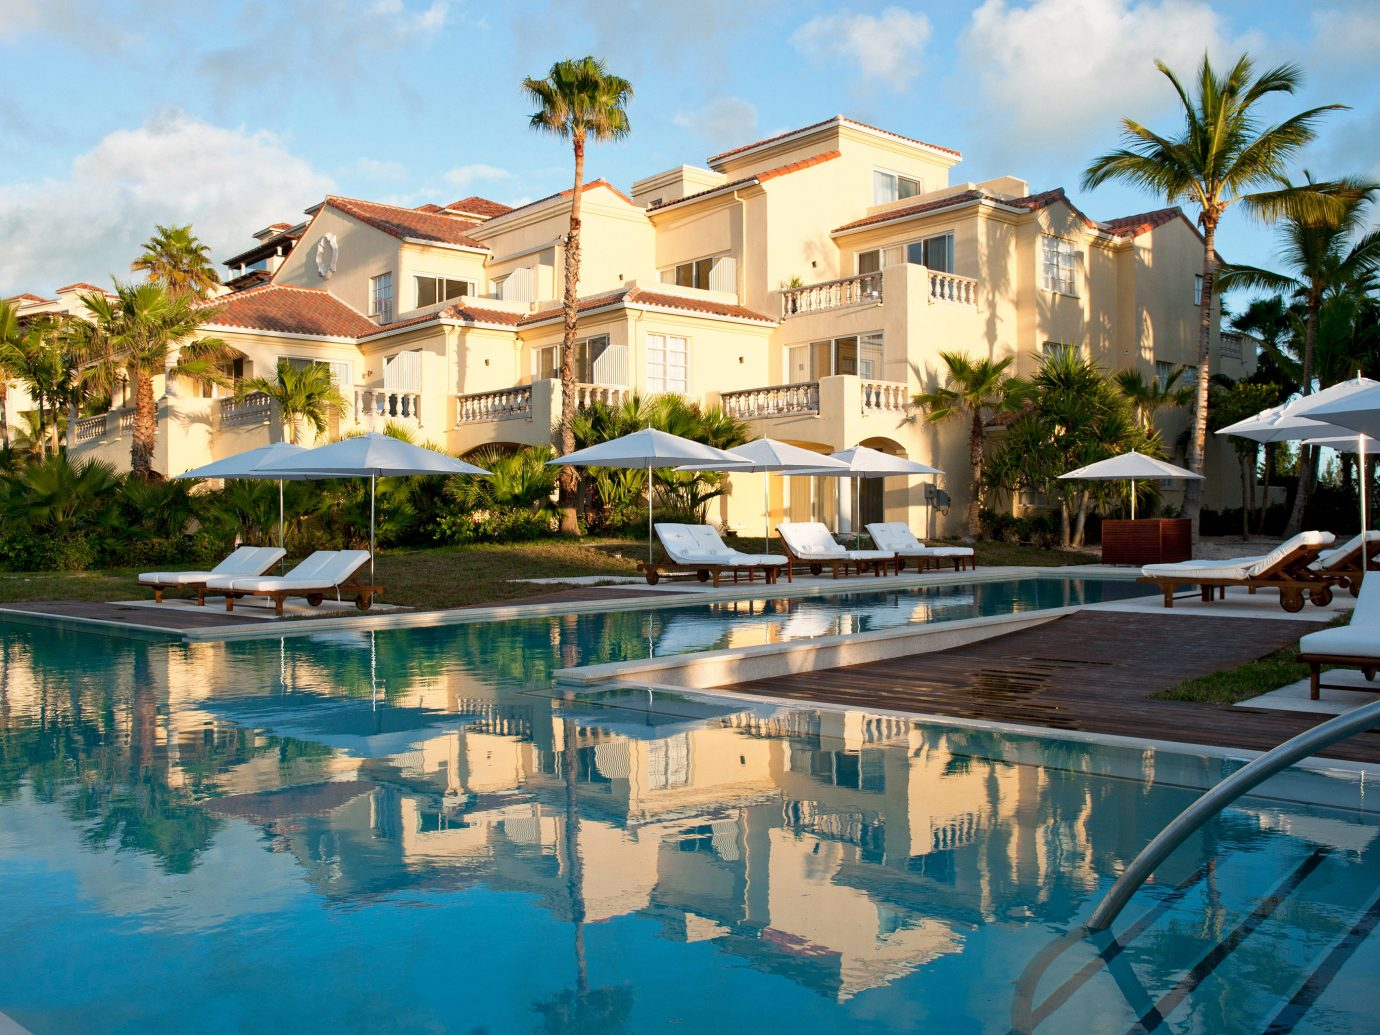 Buildings Grounds Hotels Luxury Pool Romance Scenic views Trip Ideas outdoor building sky swimming pool property Resort leisure estate vacation condominium house home resort town Villa mansion real estate marina Village area several